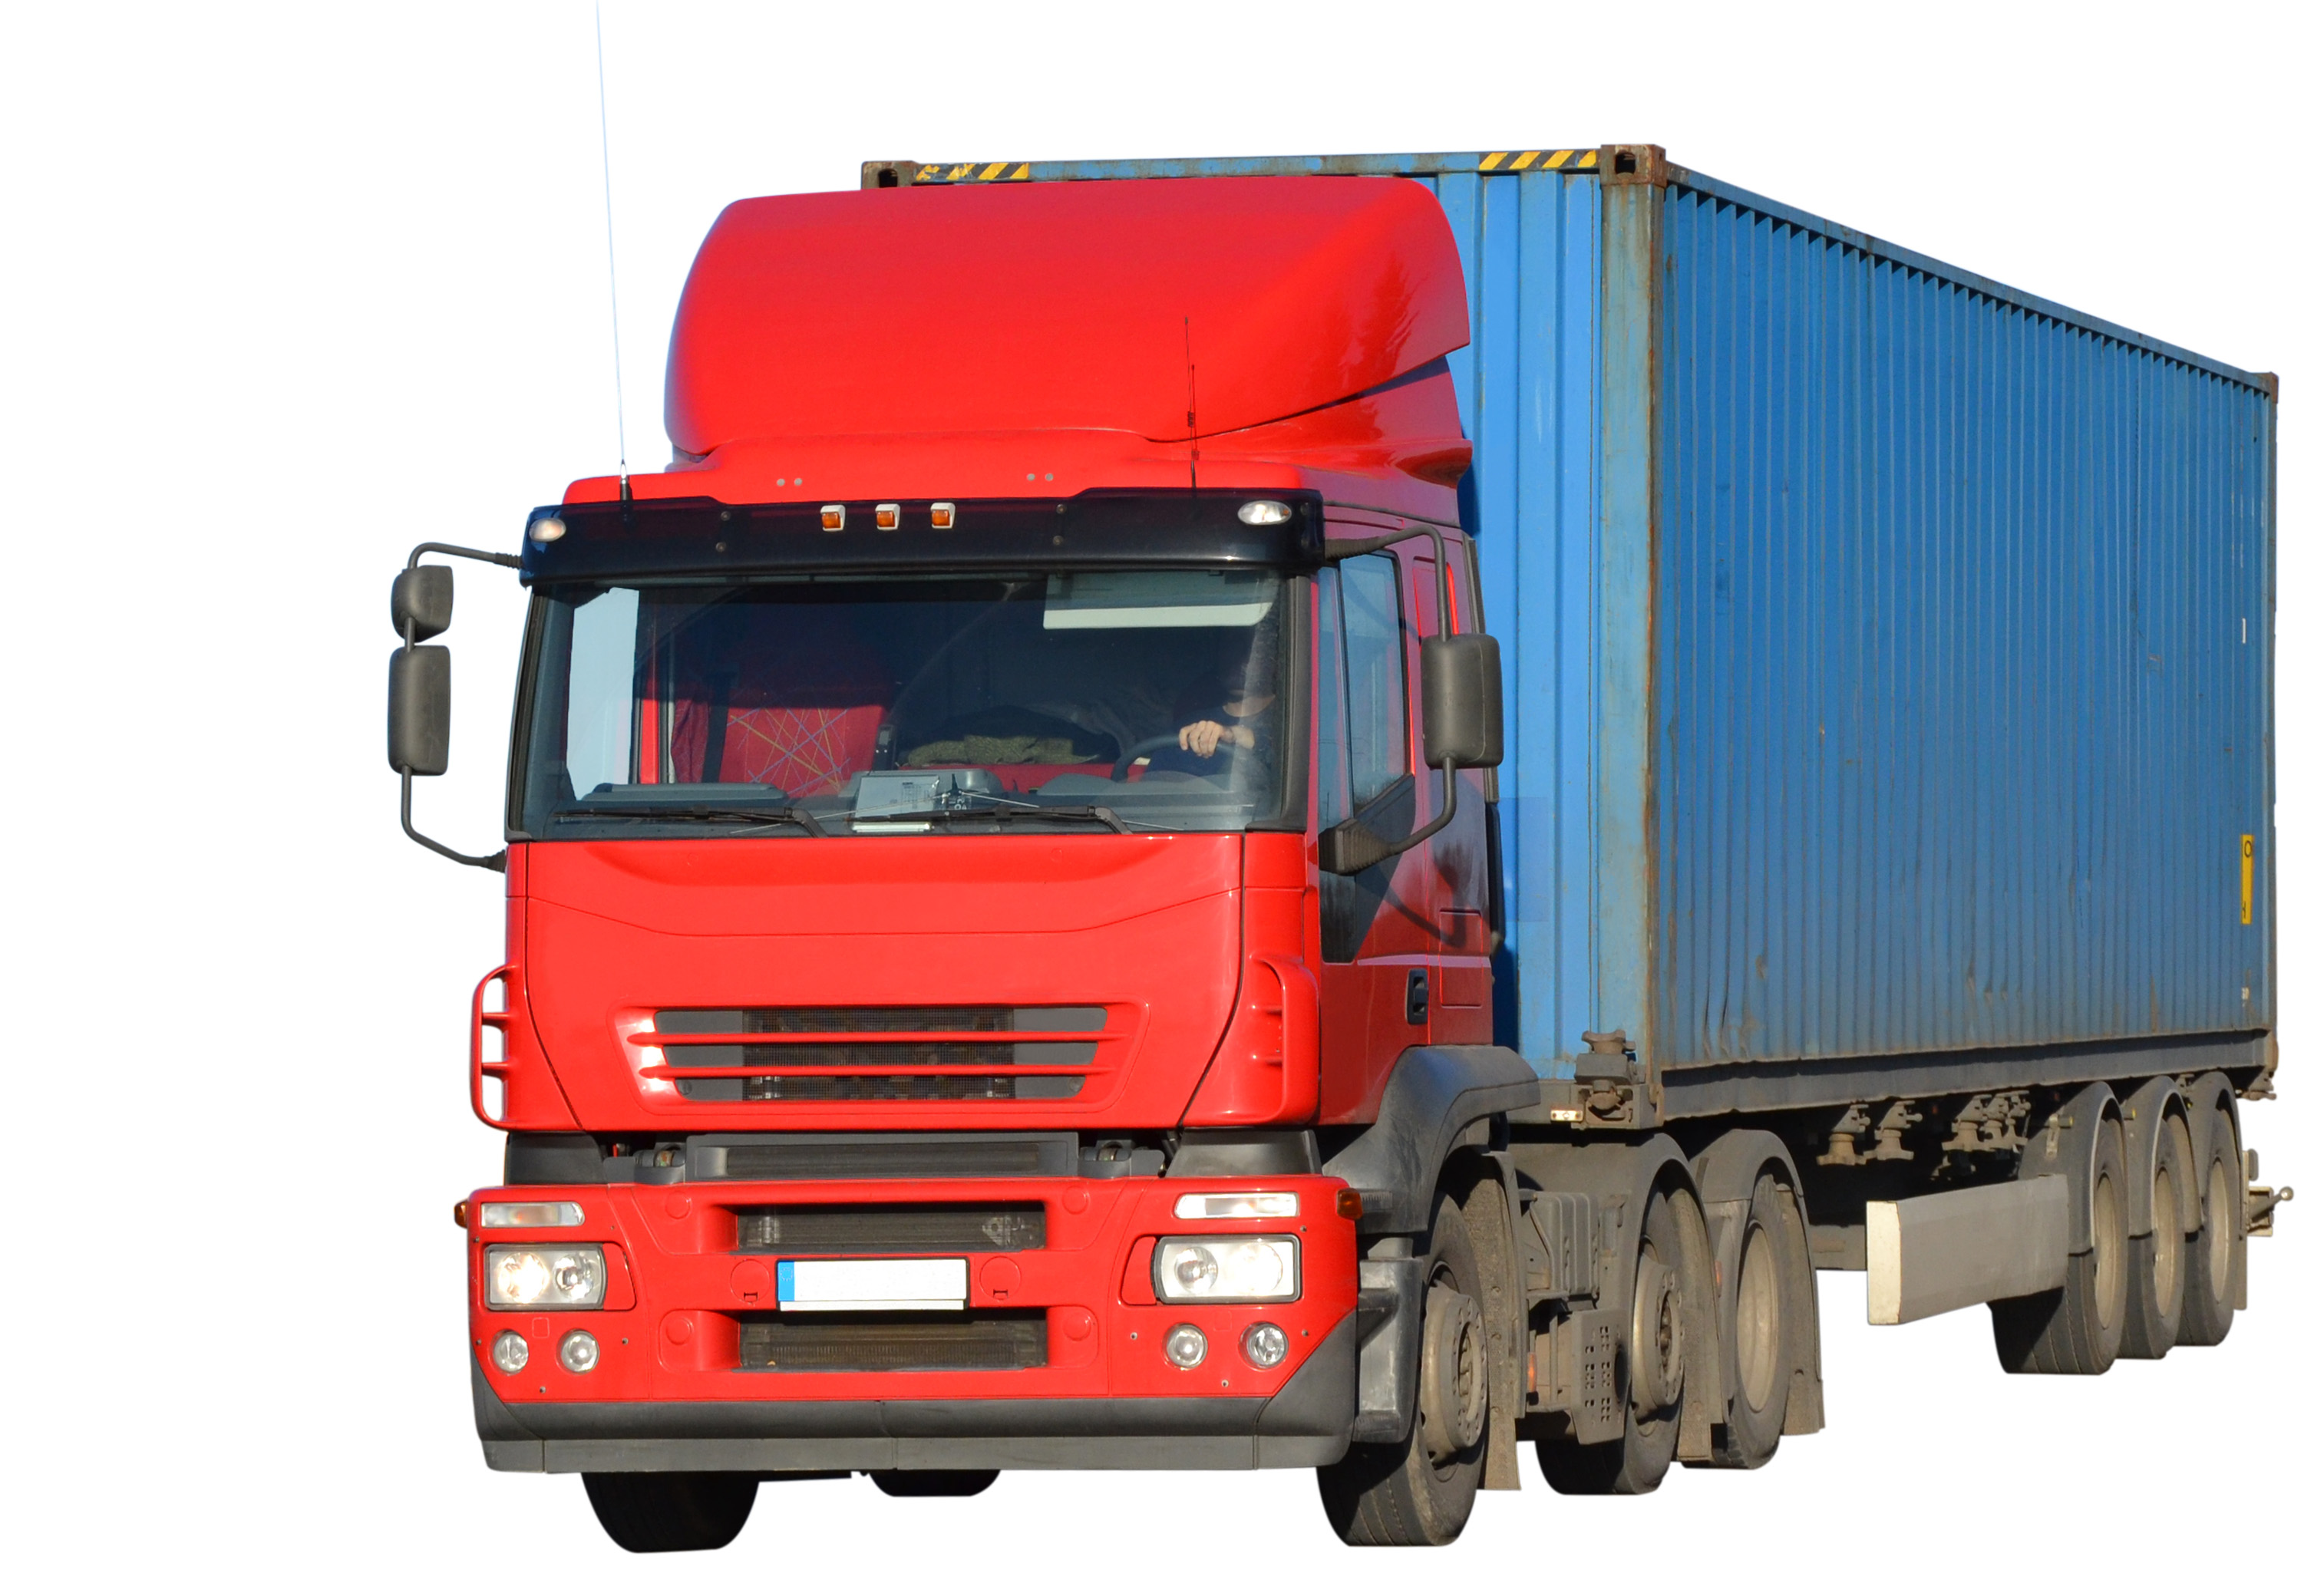 Iveco truck isolated, Automobile, Machine, Motor, Red, HQ Photo